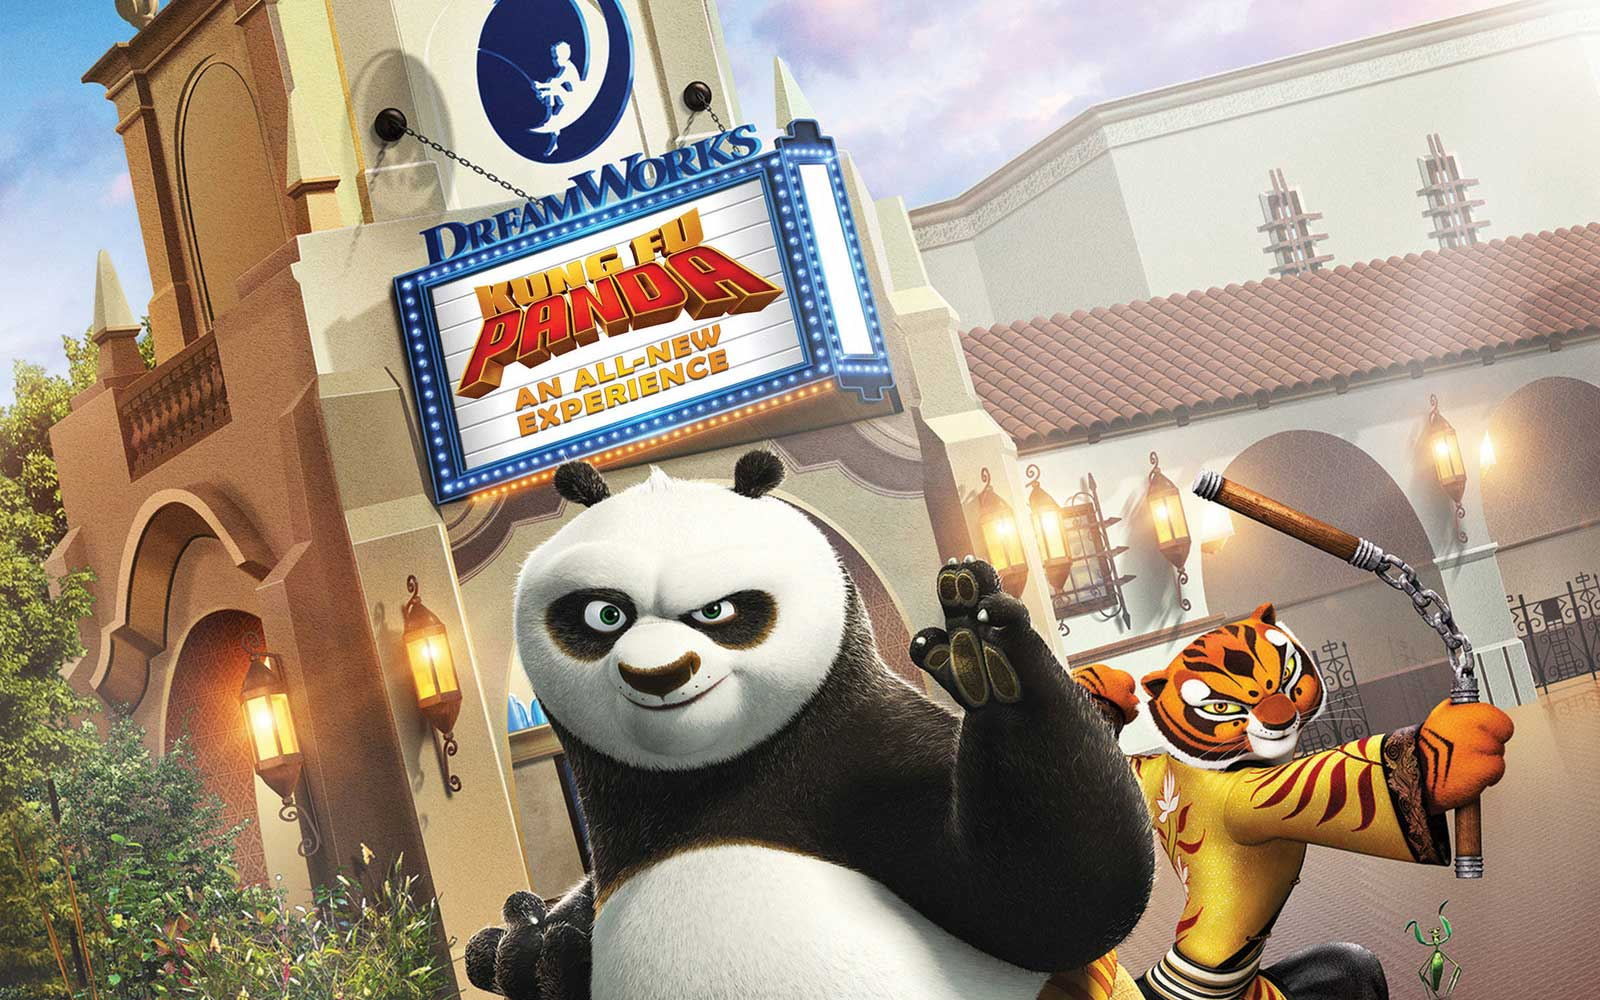 Dreamworks Theater featuring Kung Fu Panda coming to Universal Studios in 2018